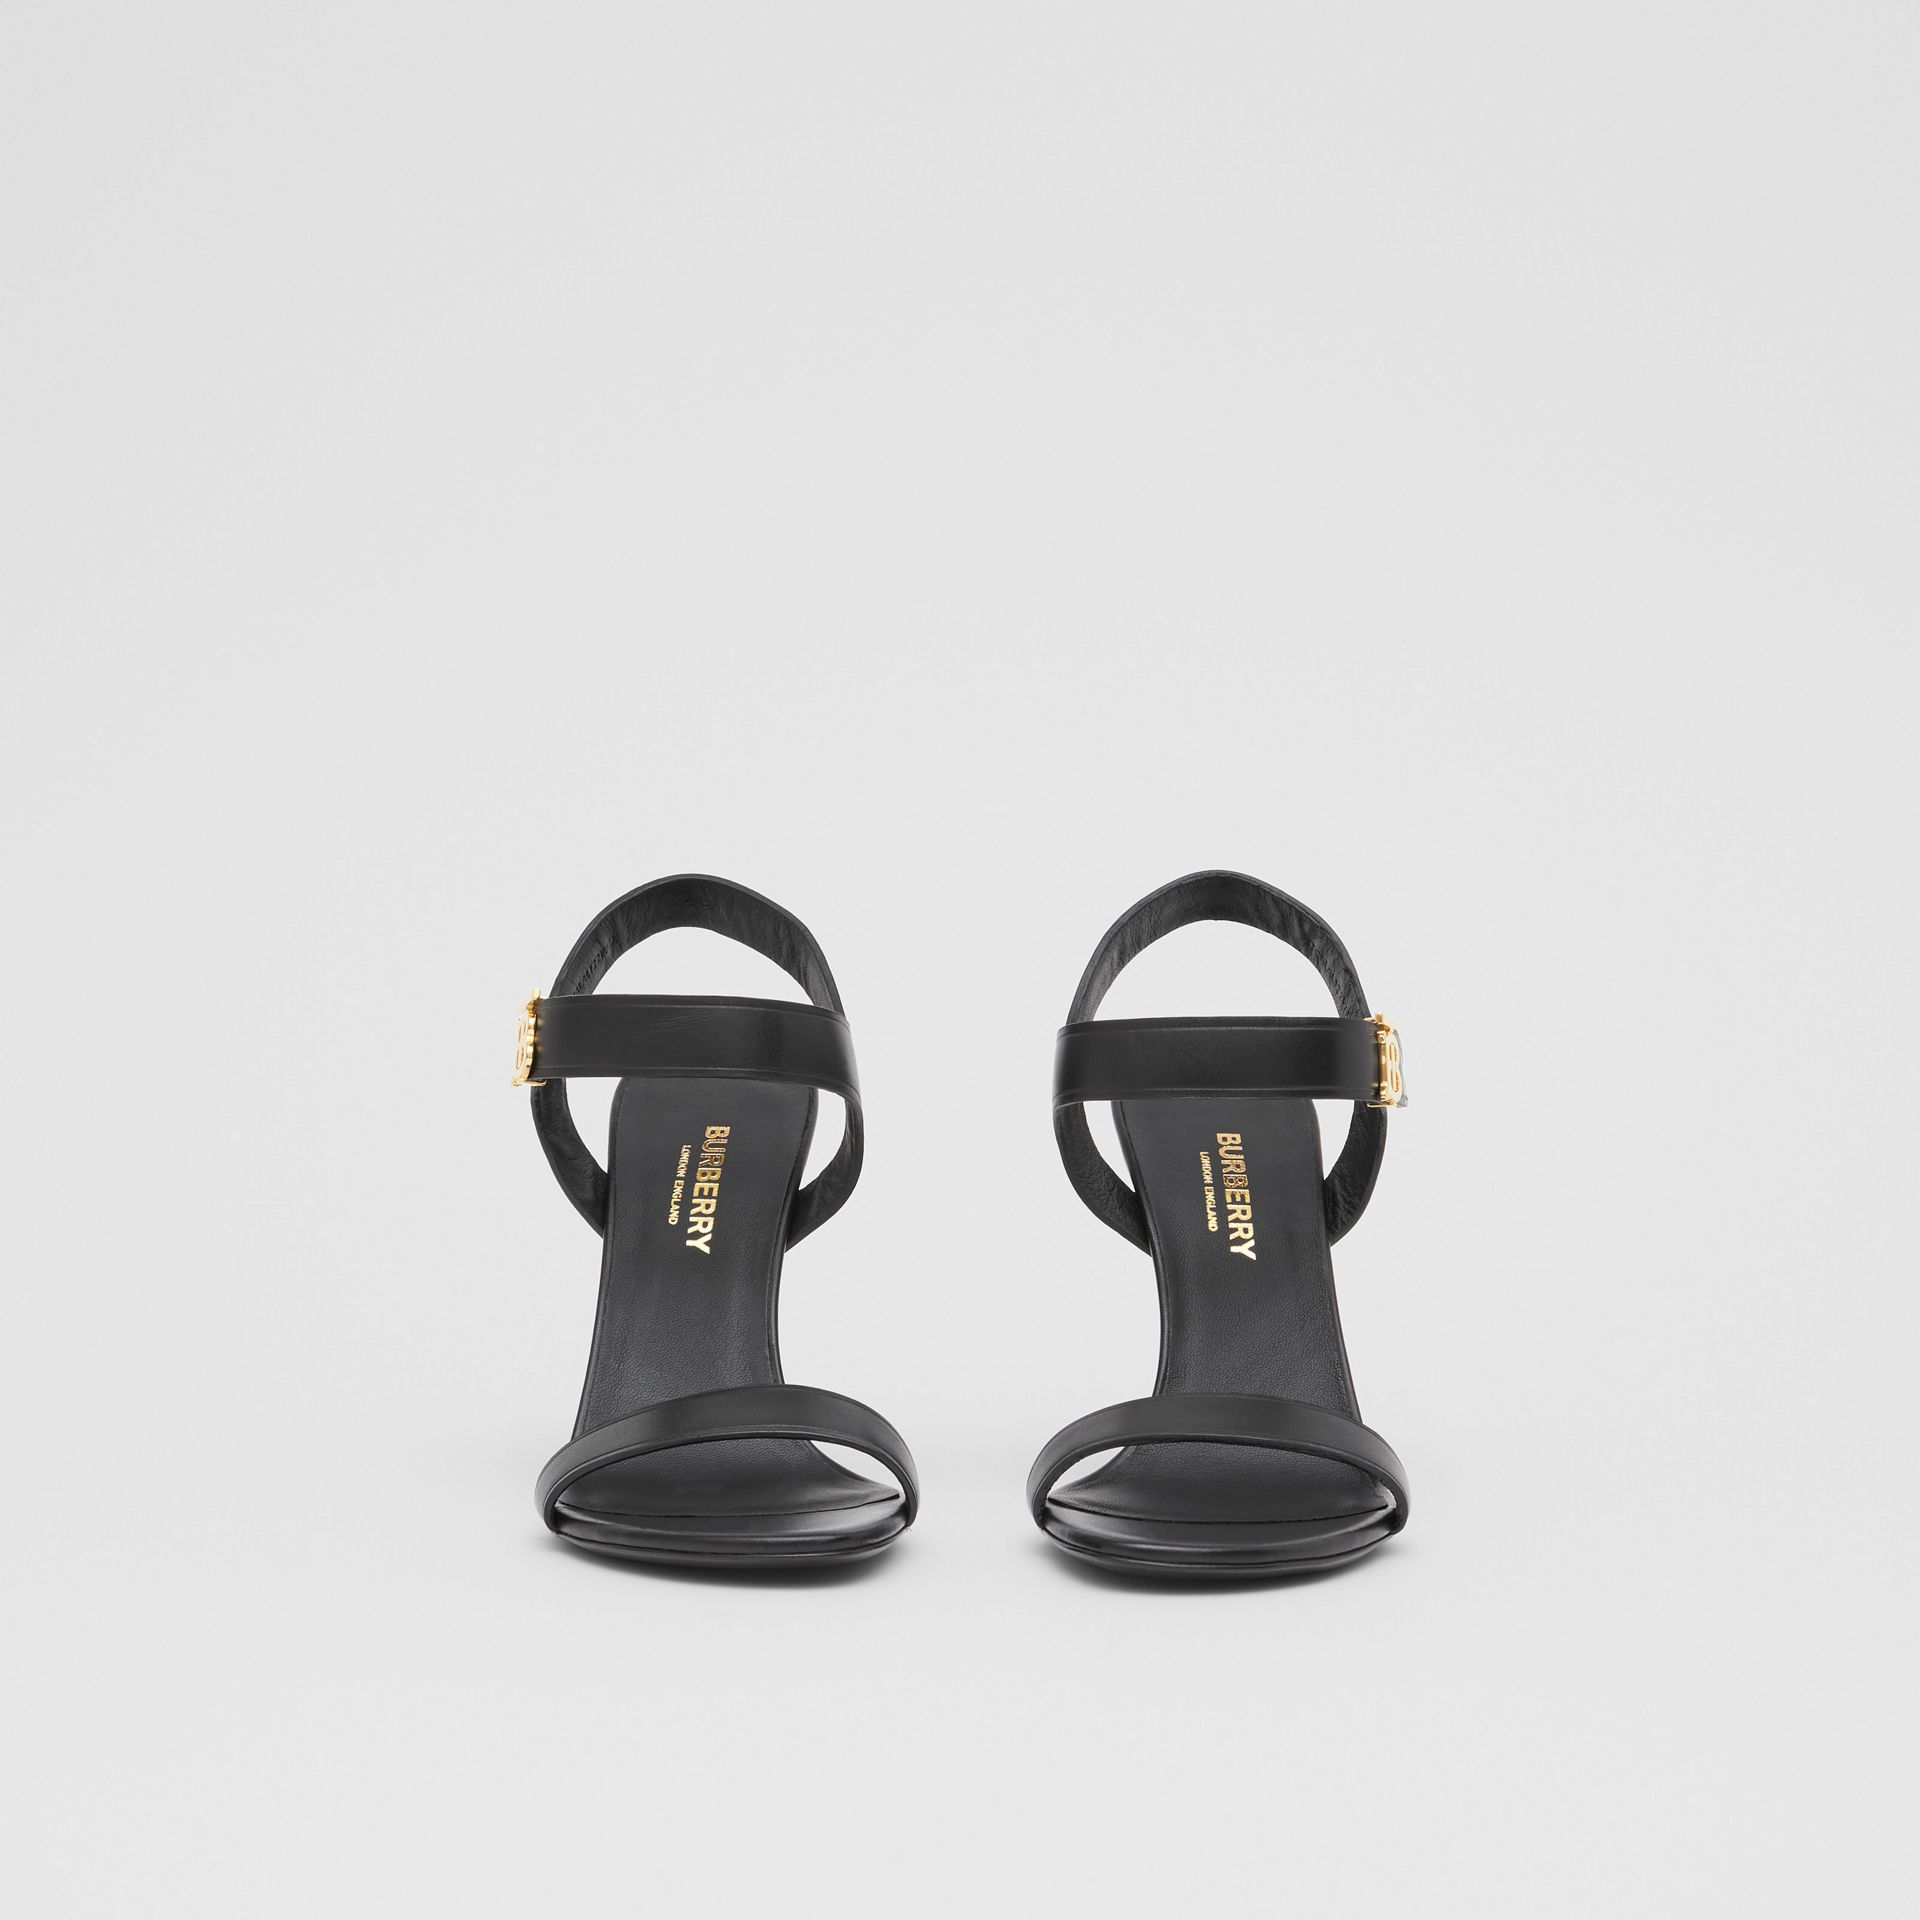 Monogram Motif Leather Sandals in Black - Women | Burberry United Kingdom - gallery image 3